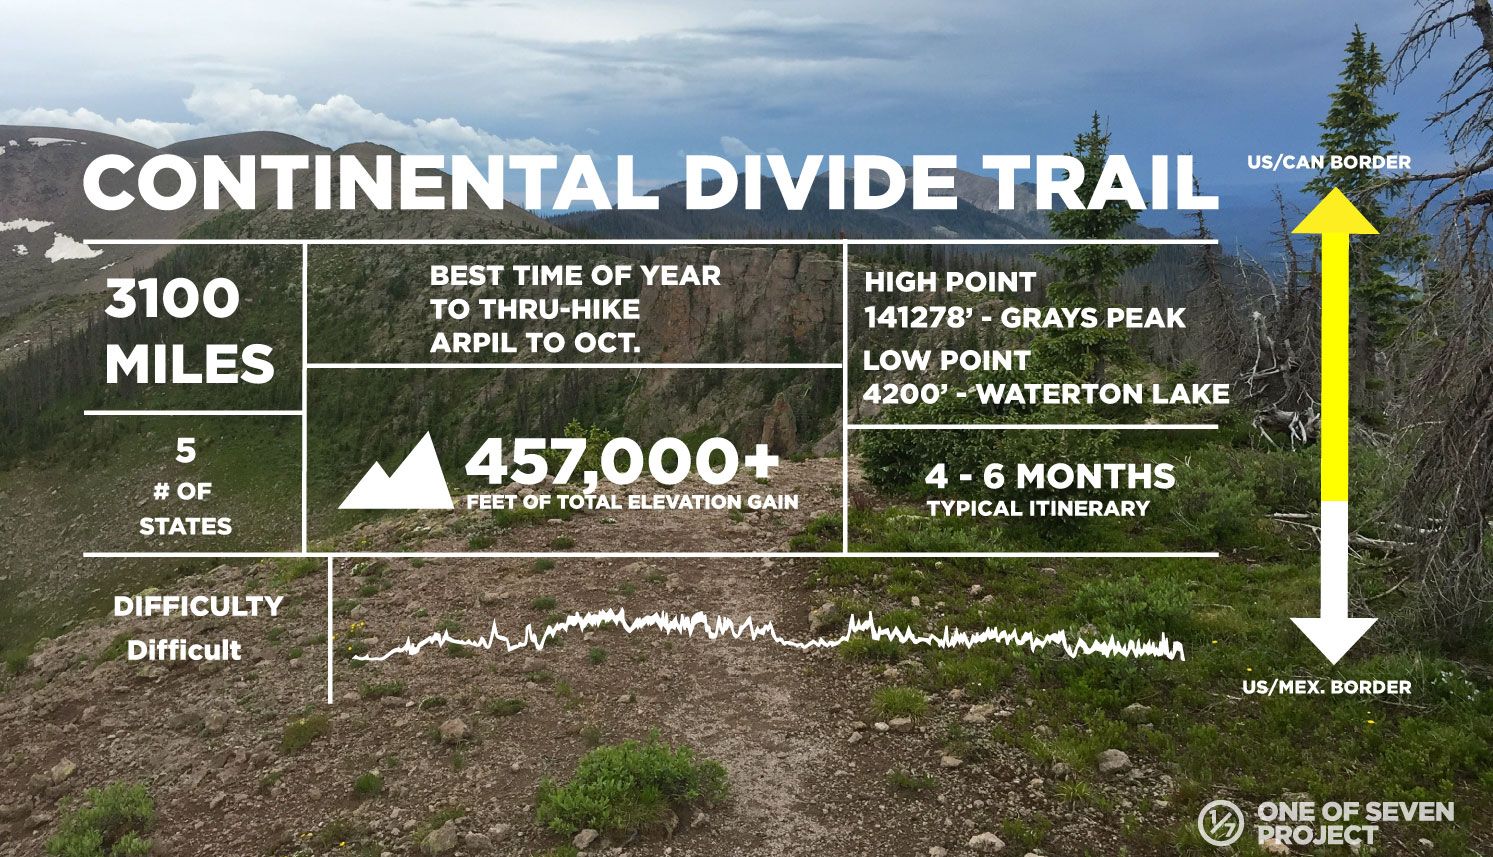 CONTINENTAL DIVIDE TRAIL-DATA-COLLAGES - HIKING - THRU-HIKING